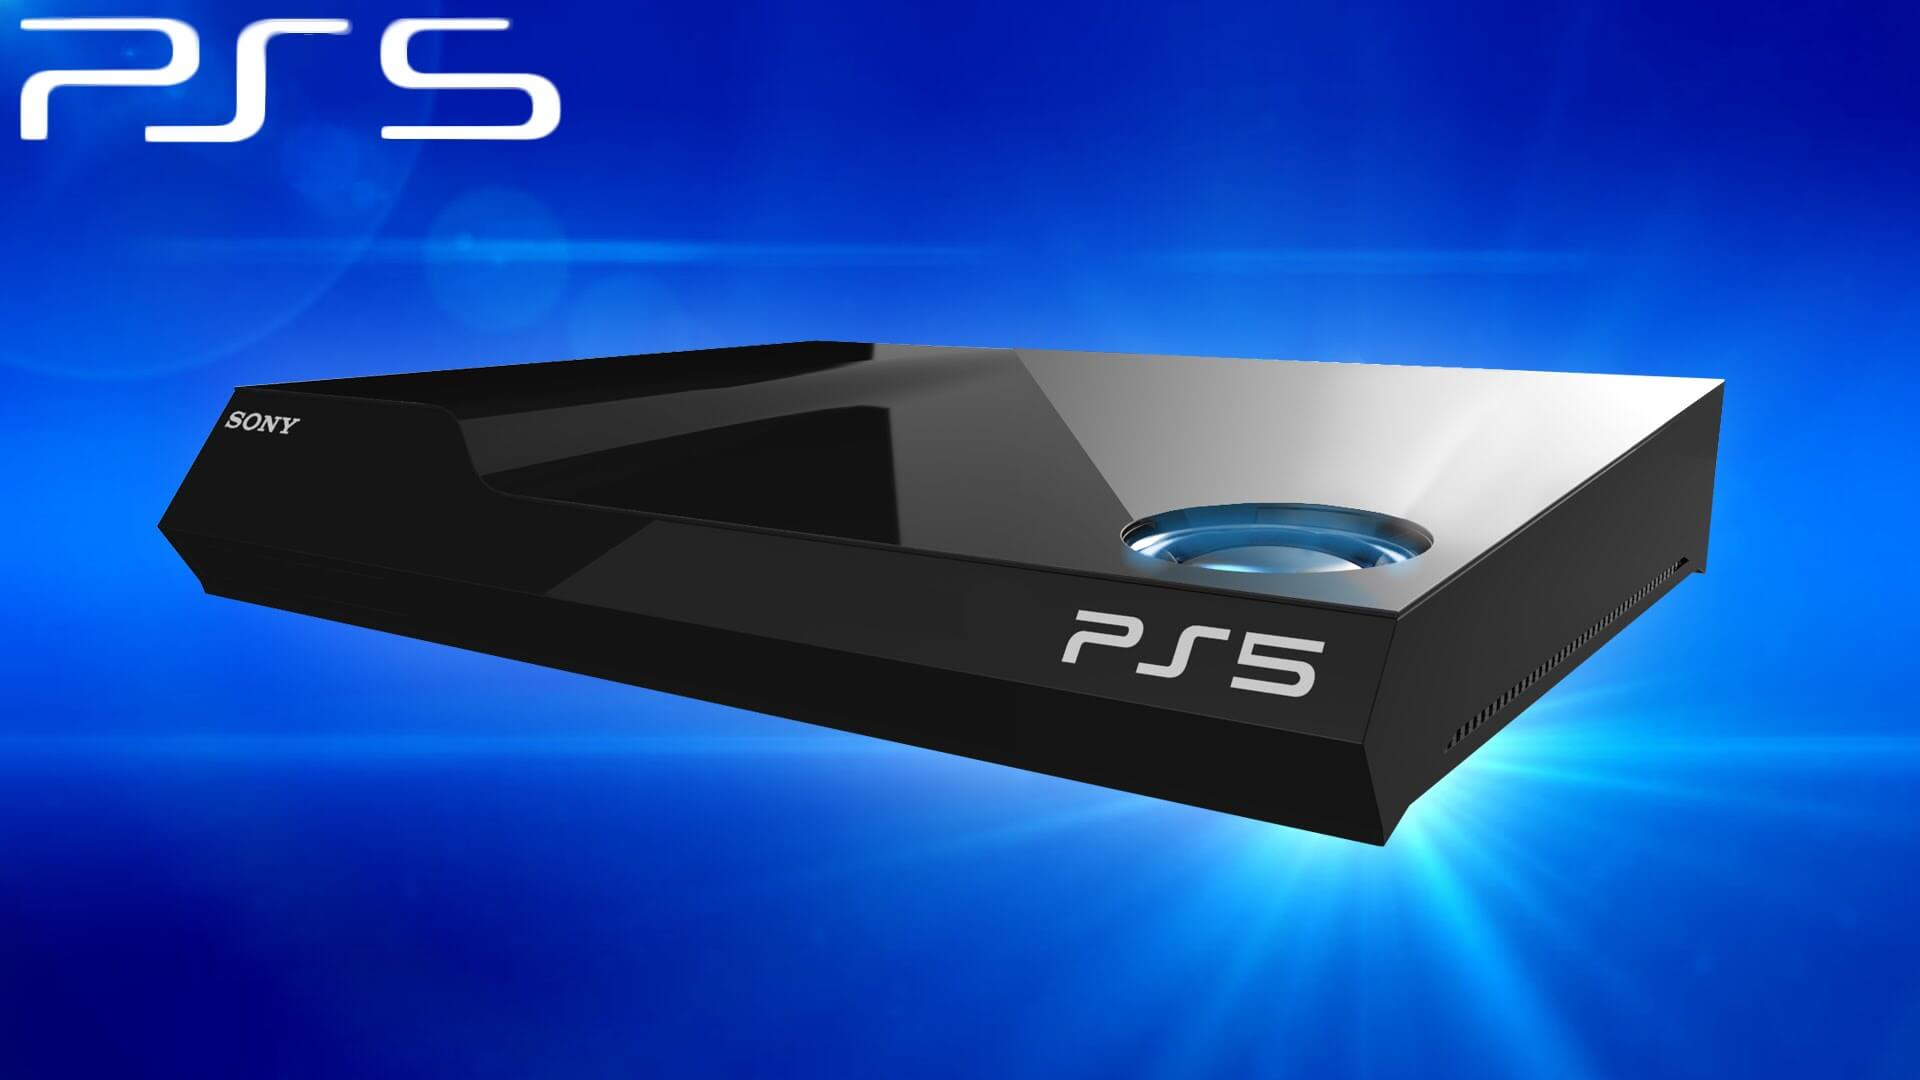 PlayStation 5 Release Date Possibly Pushed Back